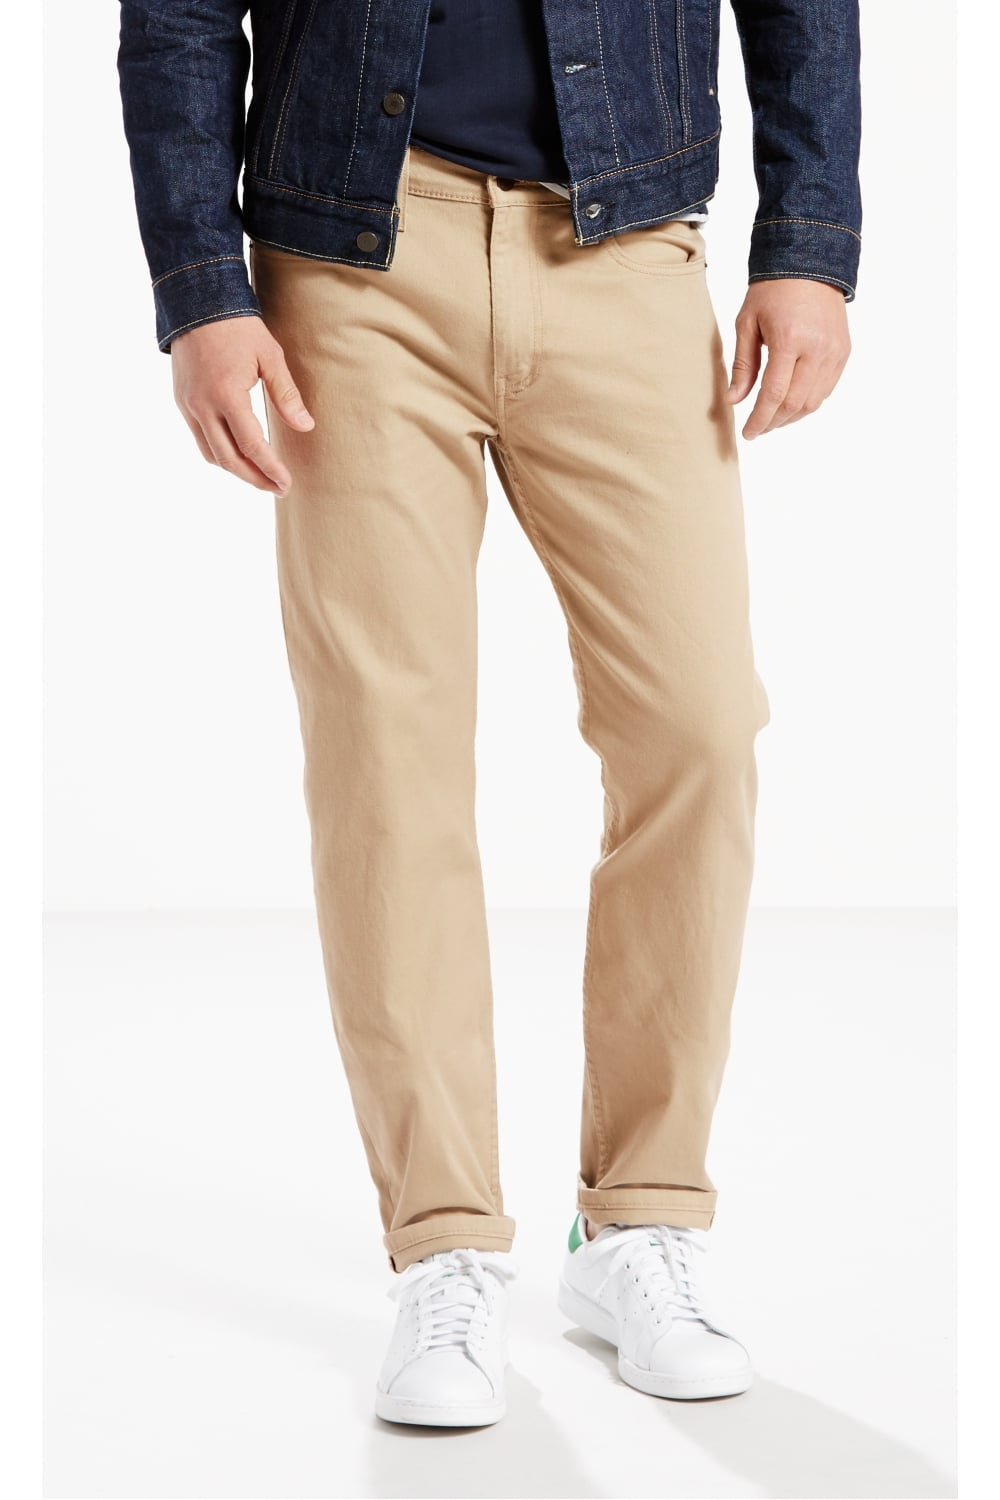 official images separation shoes huge range of Levi's 502 Regular Tapered Chinos (Punk Star True Chino)